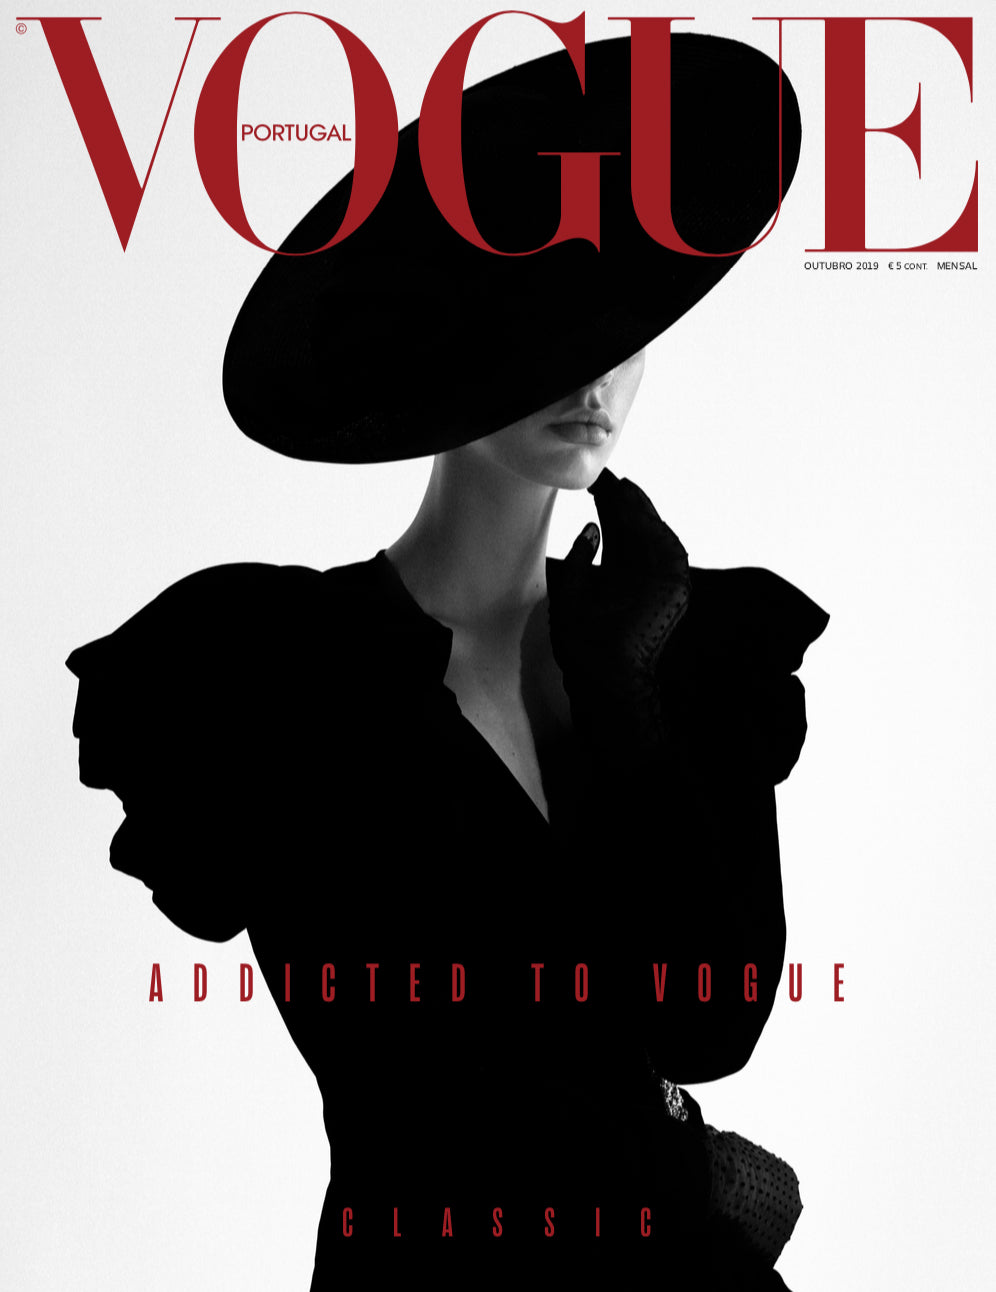 Addicted to Vogue - Cover 2